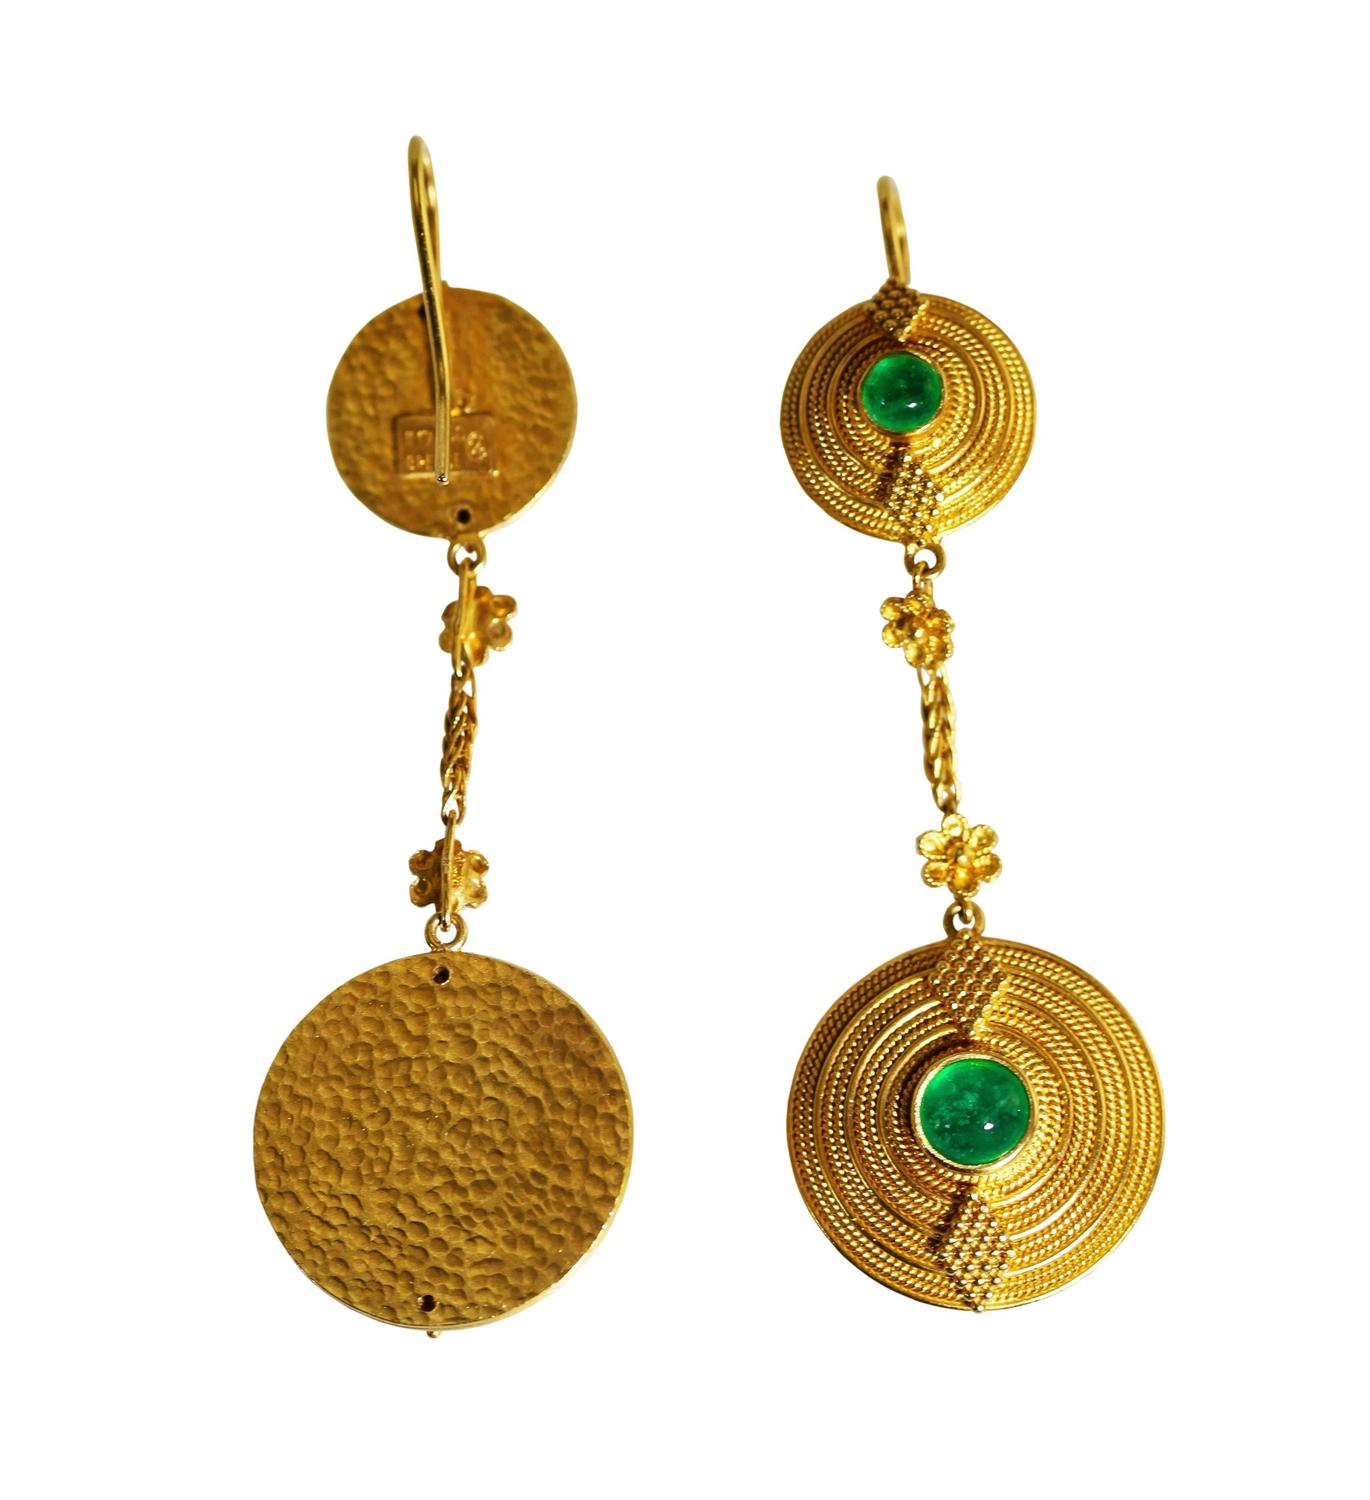 Lalaounis Cabochon Emerald Gold Pendant Earrings For Sale at 1stdibs